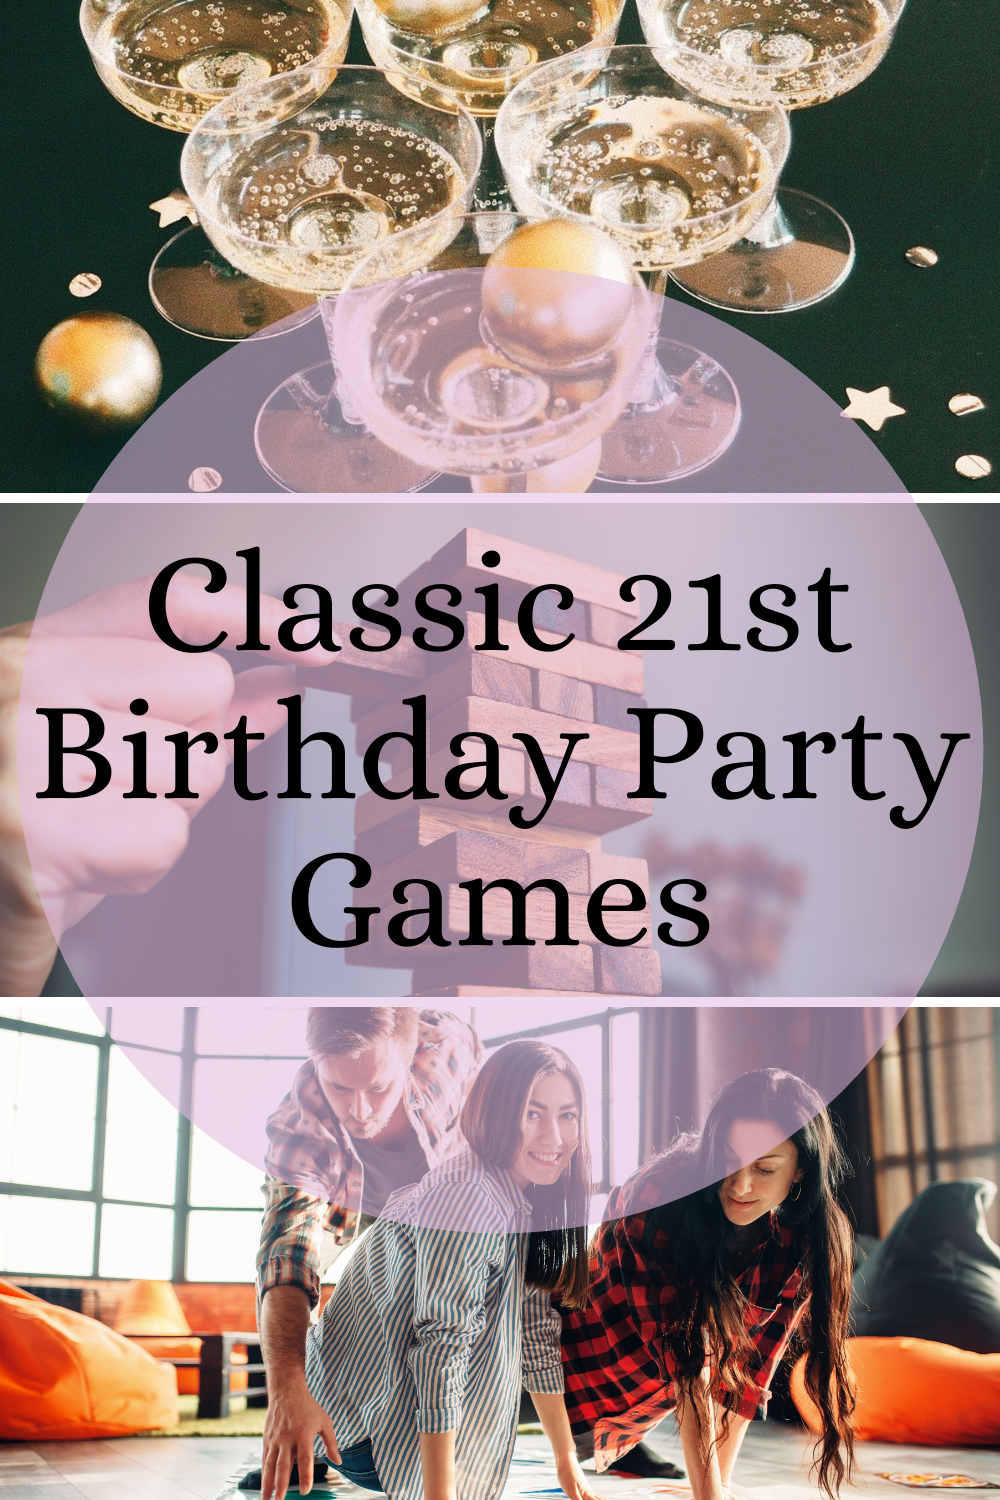 Classic 21st Birthday Party Games